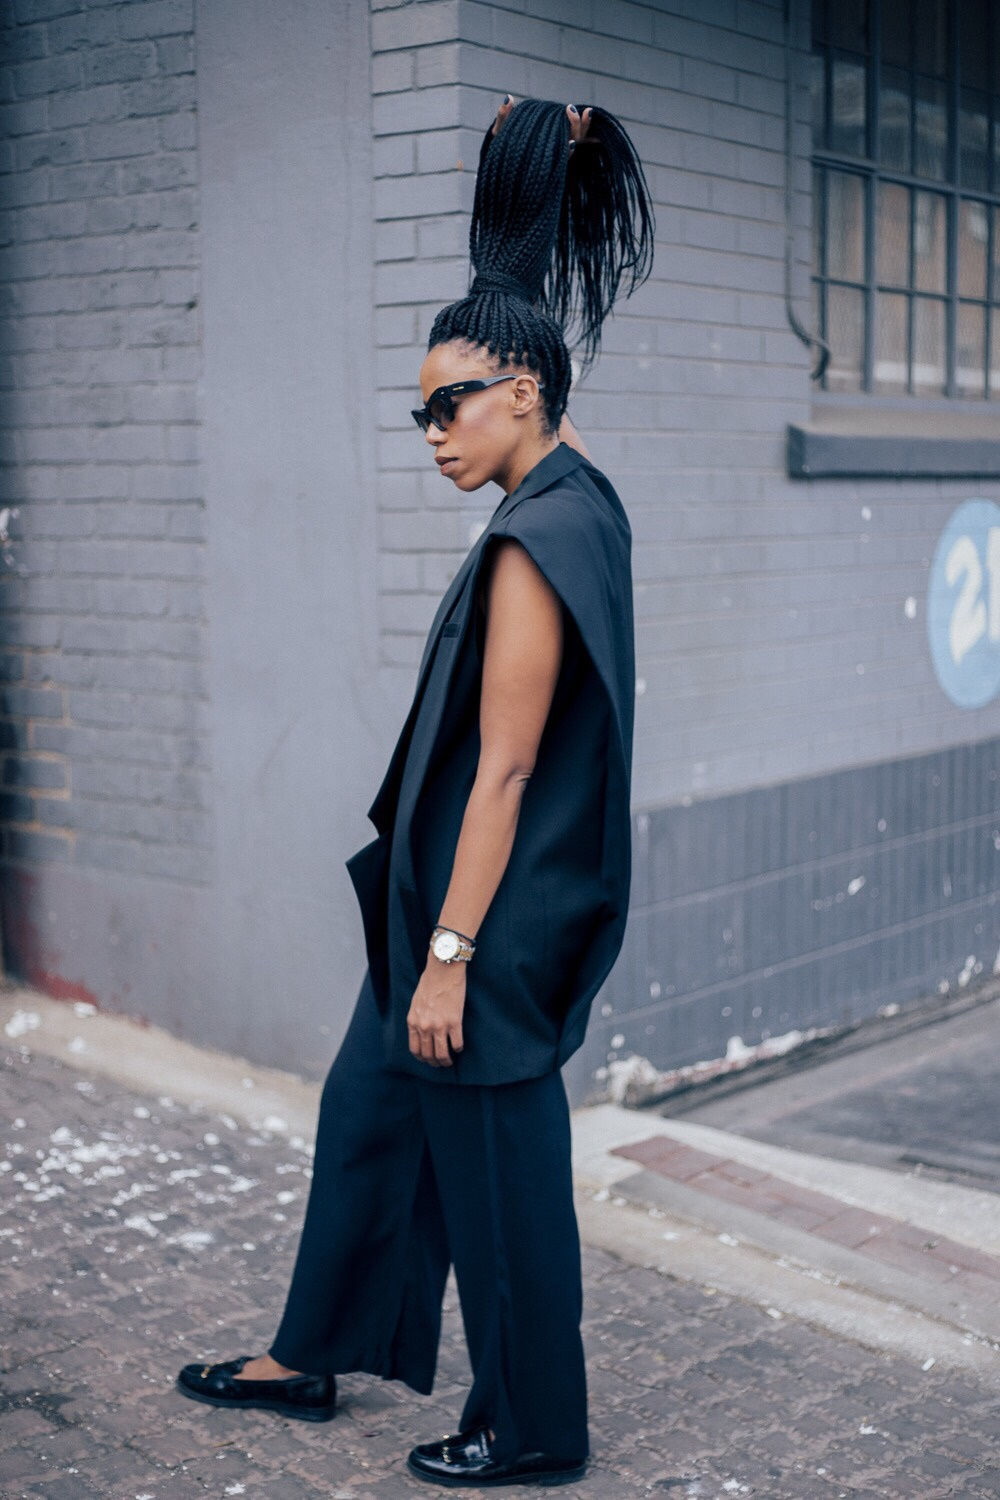 fashion blogger, style, trend